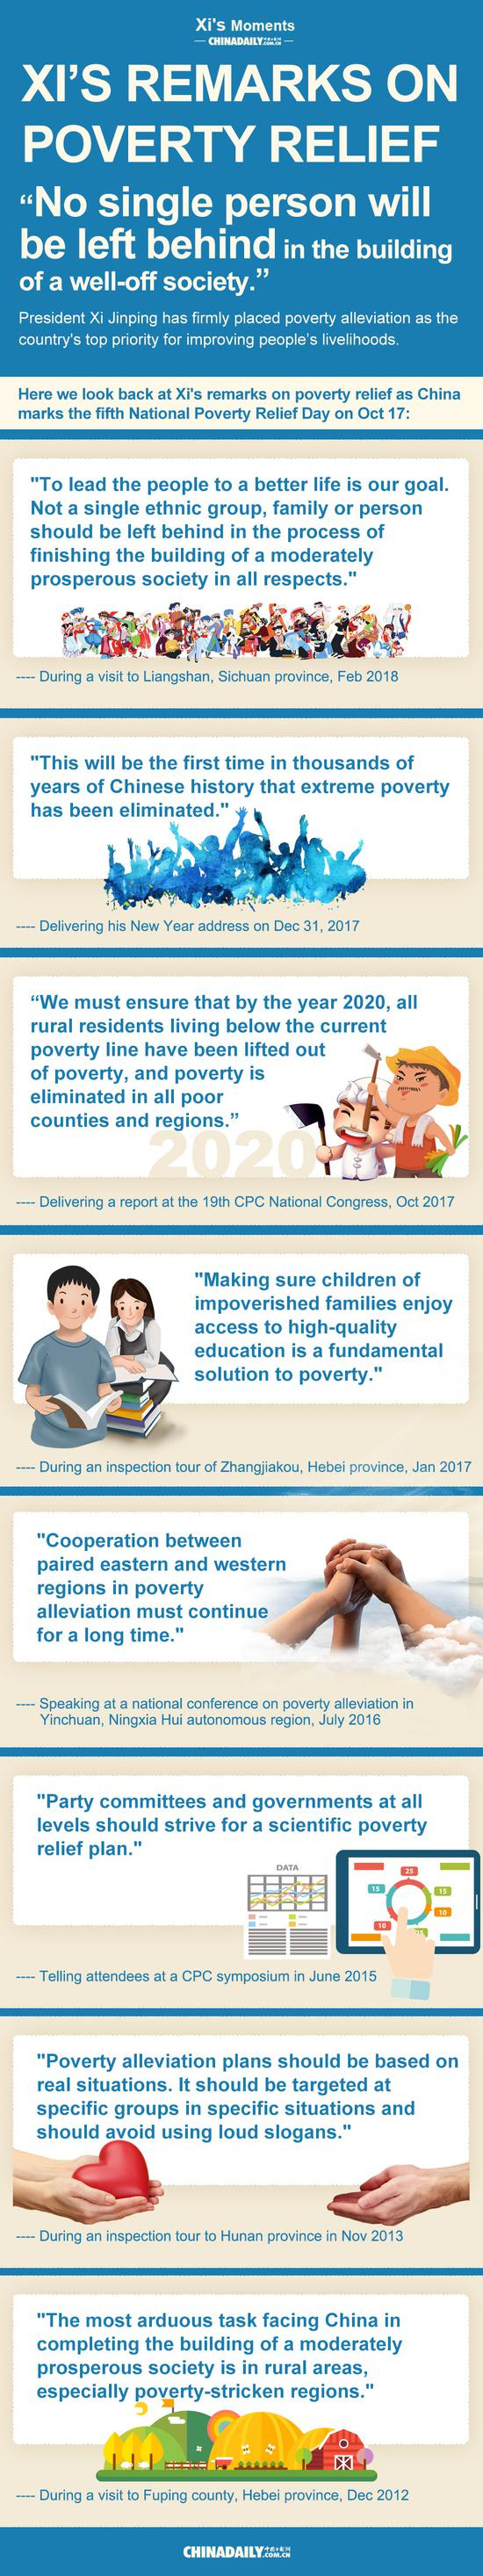 Xi's remarks on poverty relief